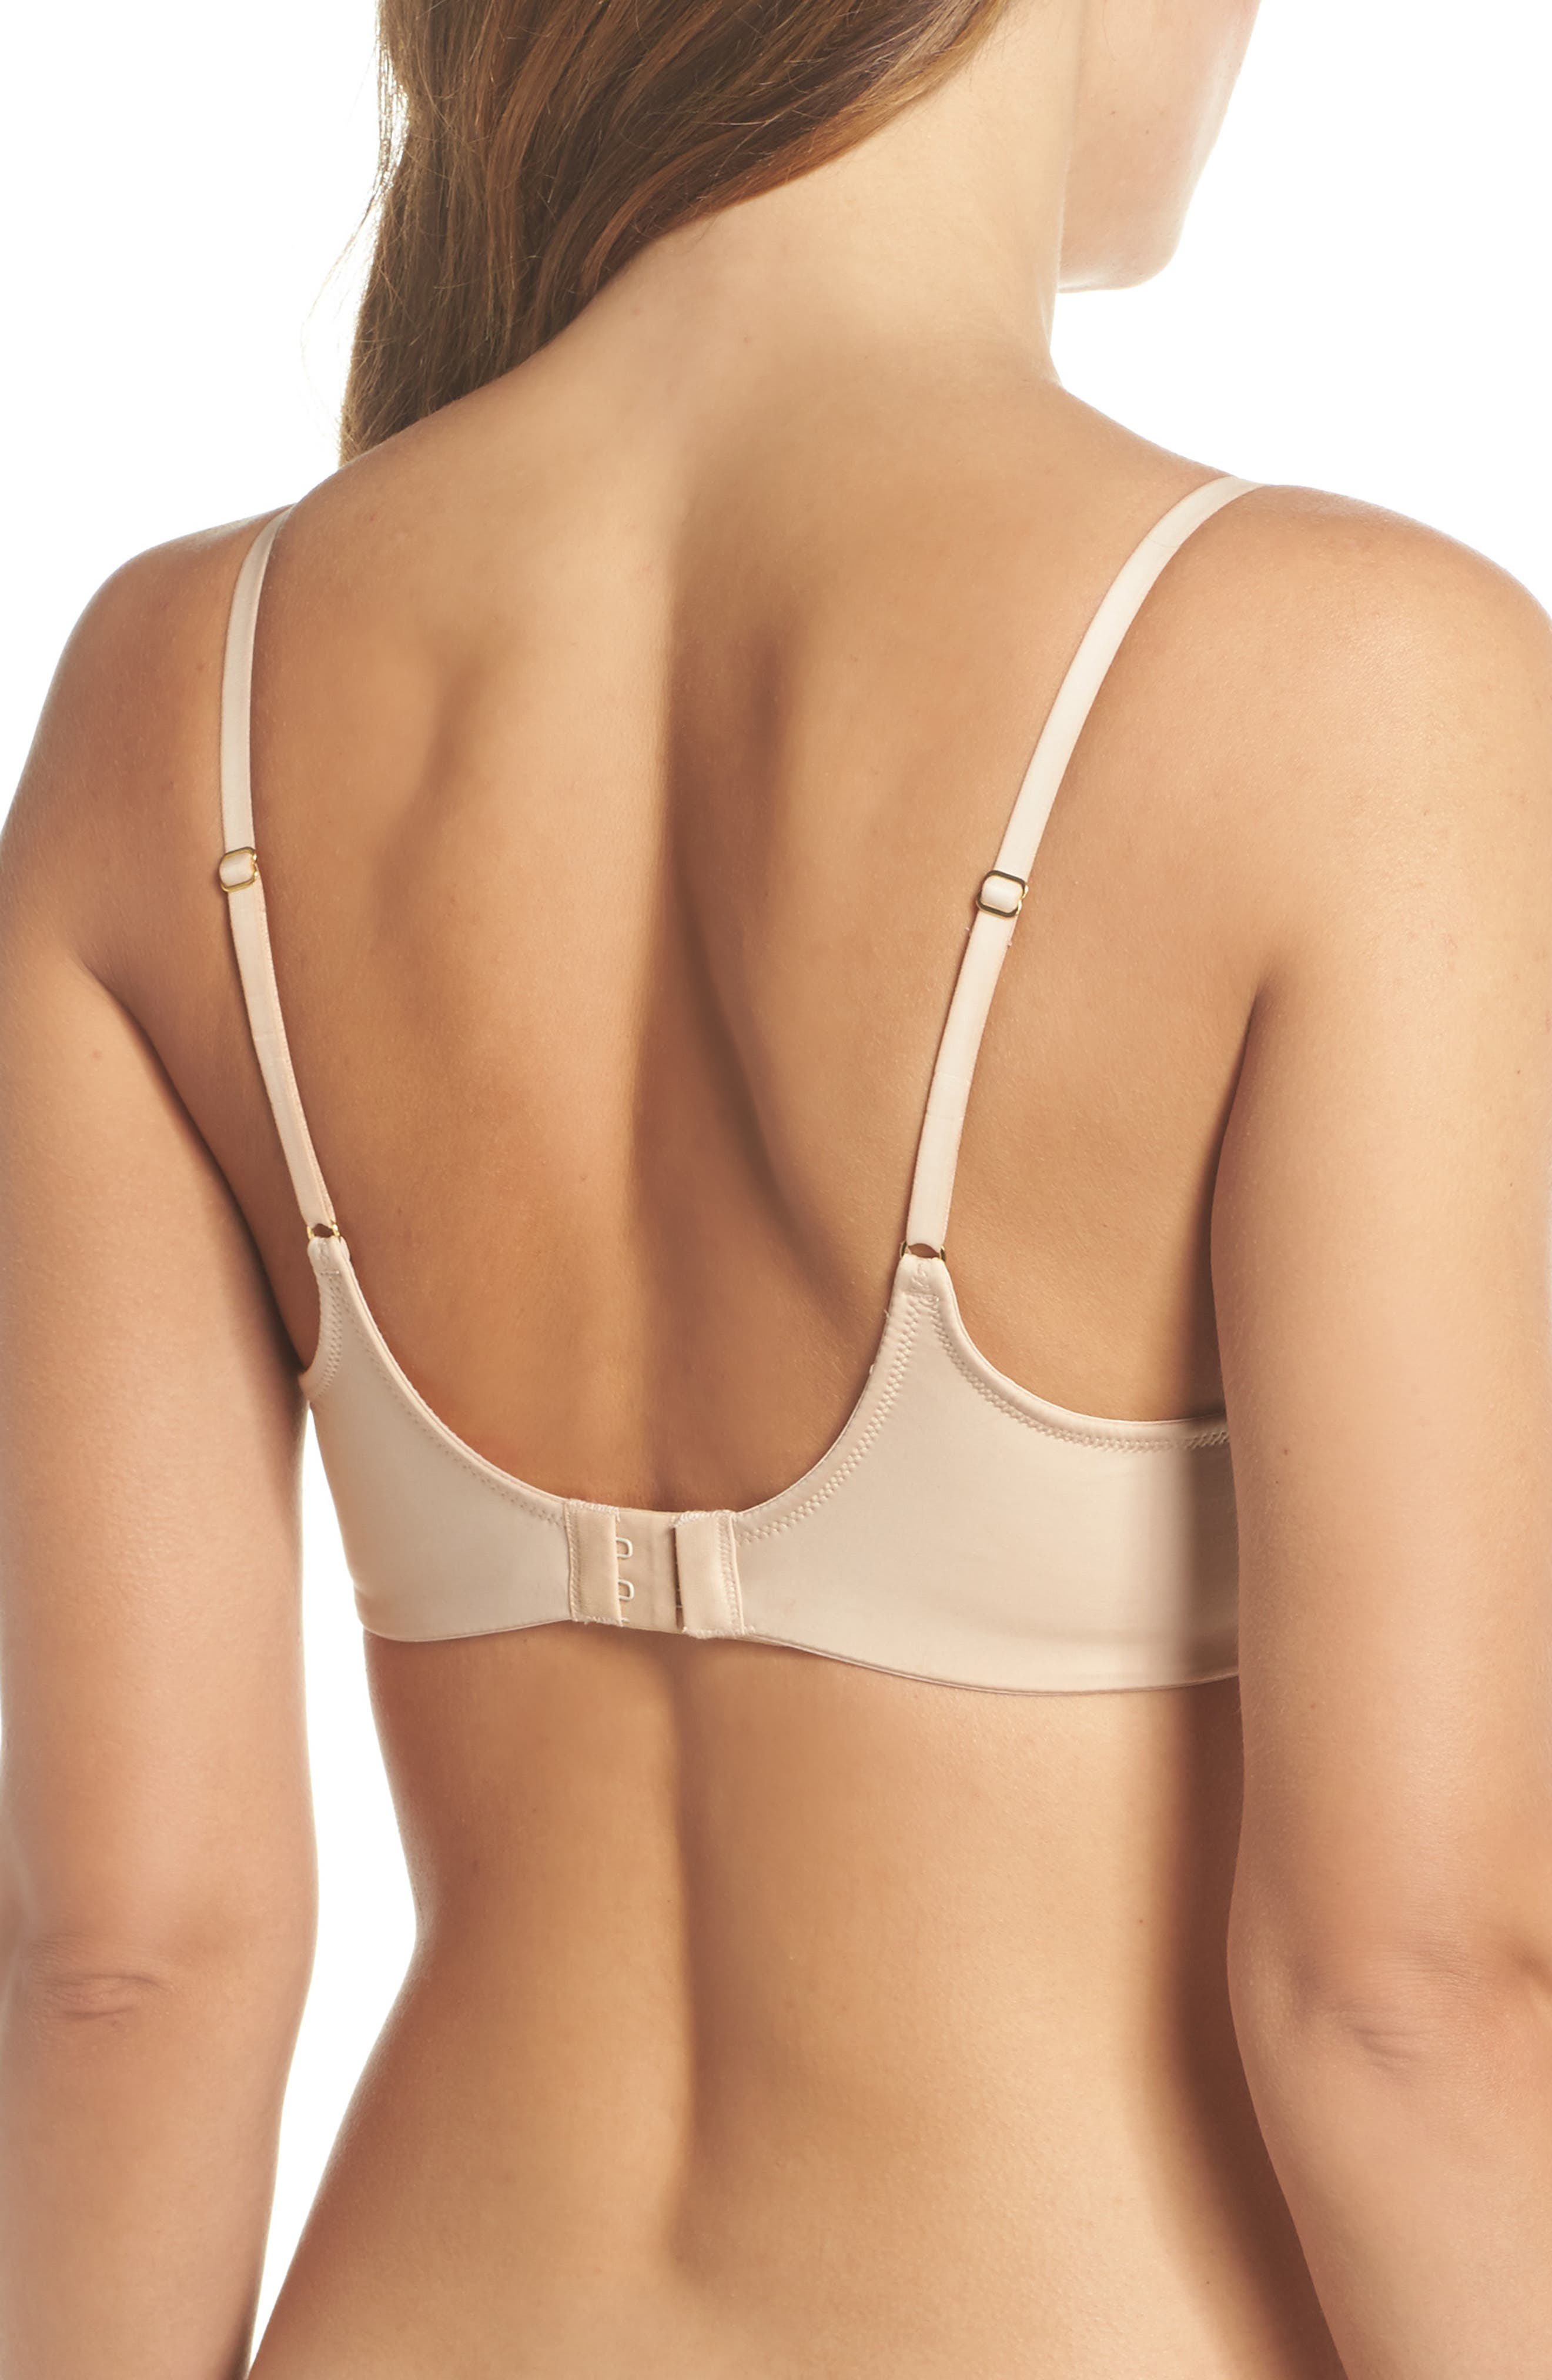 Underneath Underwire T-Shirt Bra,                             Alternate thumbnail 2, color,                             Cosmetic